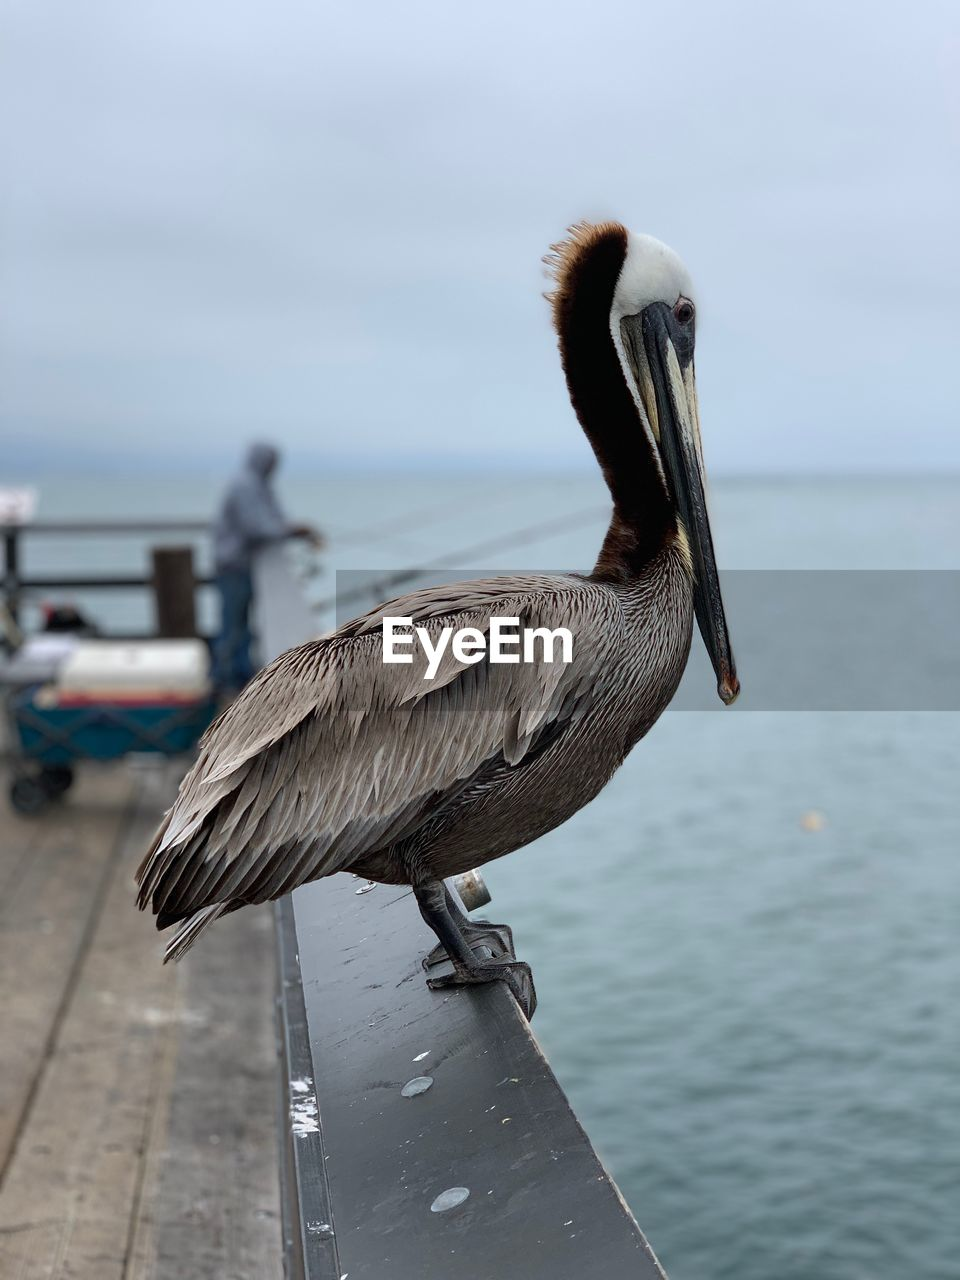 bird, vertebrate, animals in the wild, animal themes, animal, water, animal wildlife, focus on foreground, one animal, sea, nature, perching, pelican, day, sky, no people, close-up, outdoors, beak, wooden post